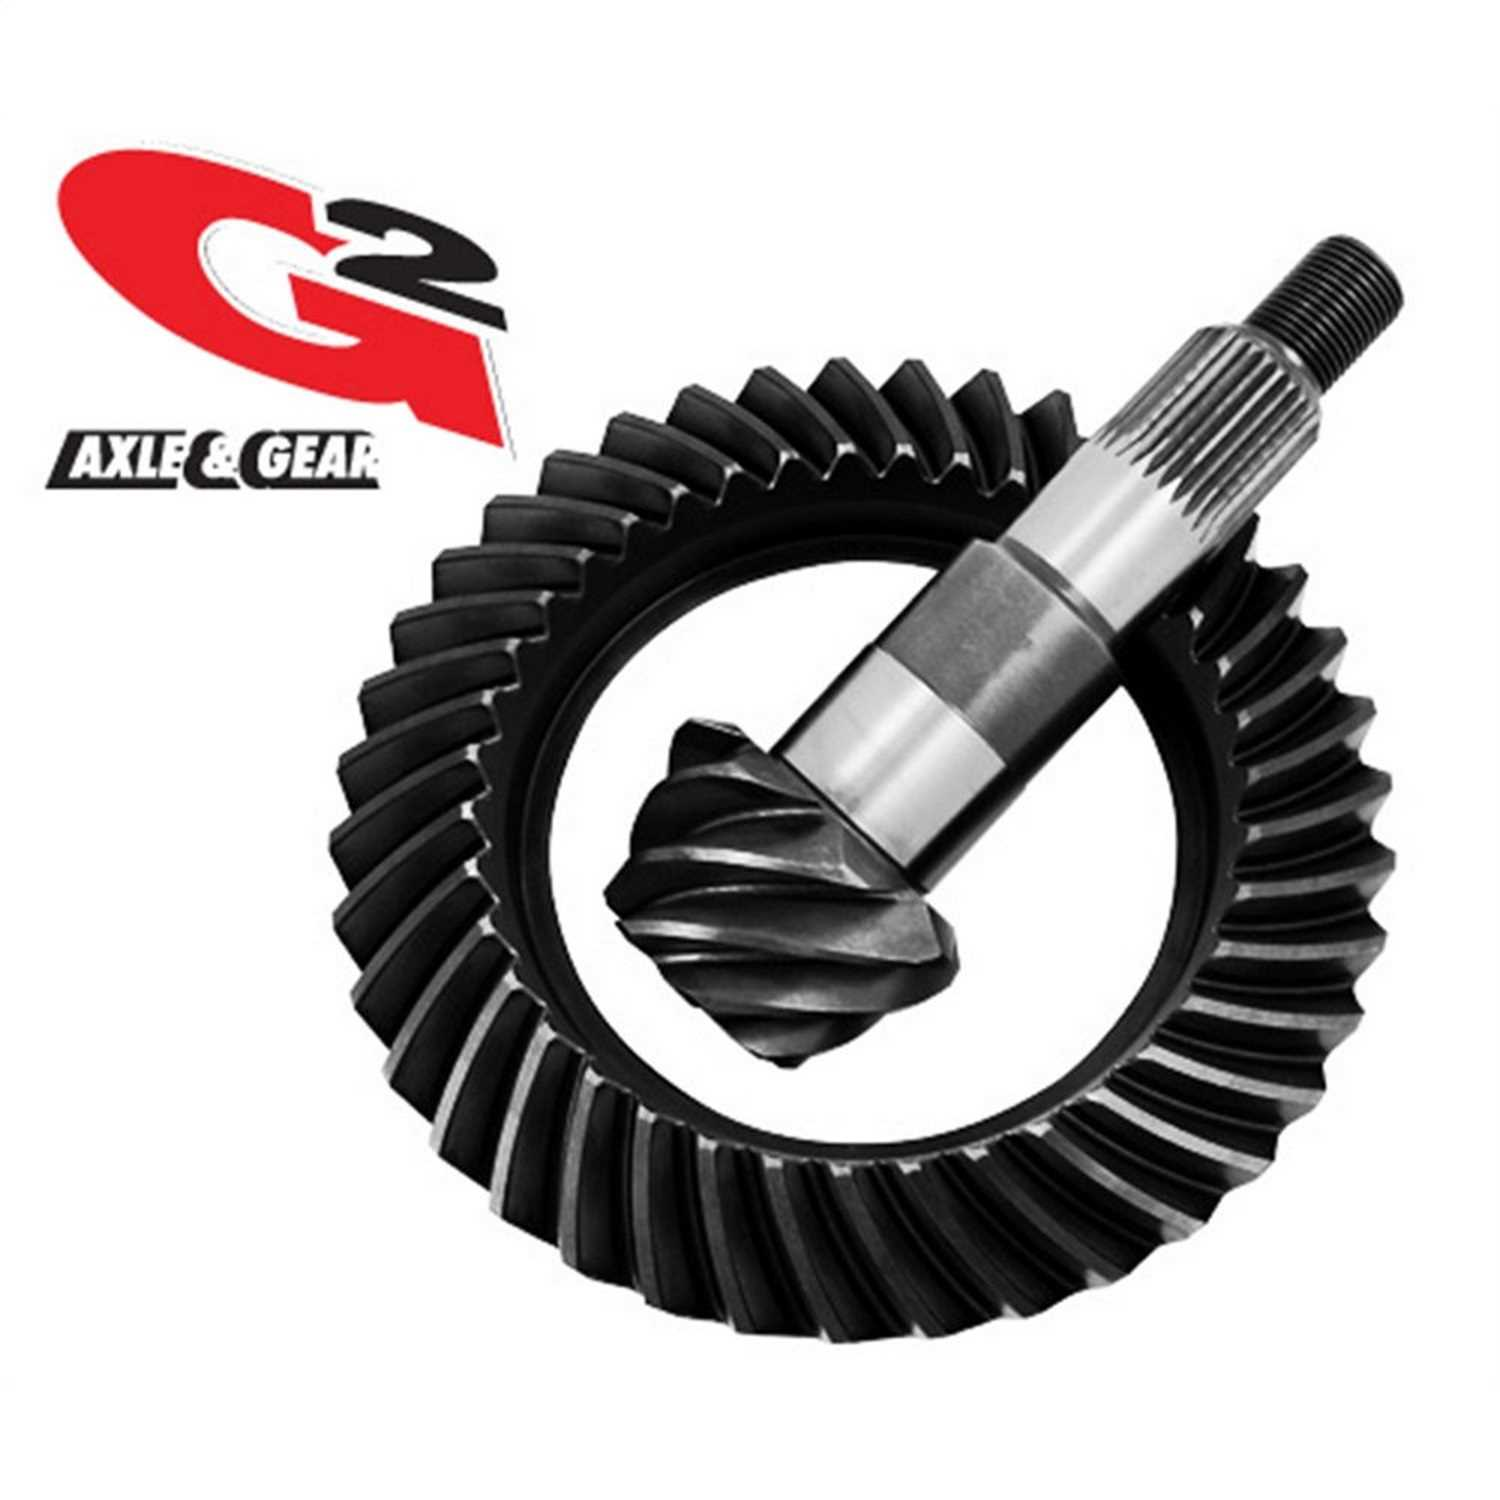 2-2033-354 G2 Axle and Gear Ring and Pinion Set